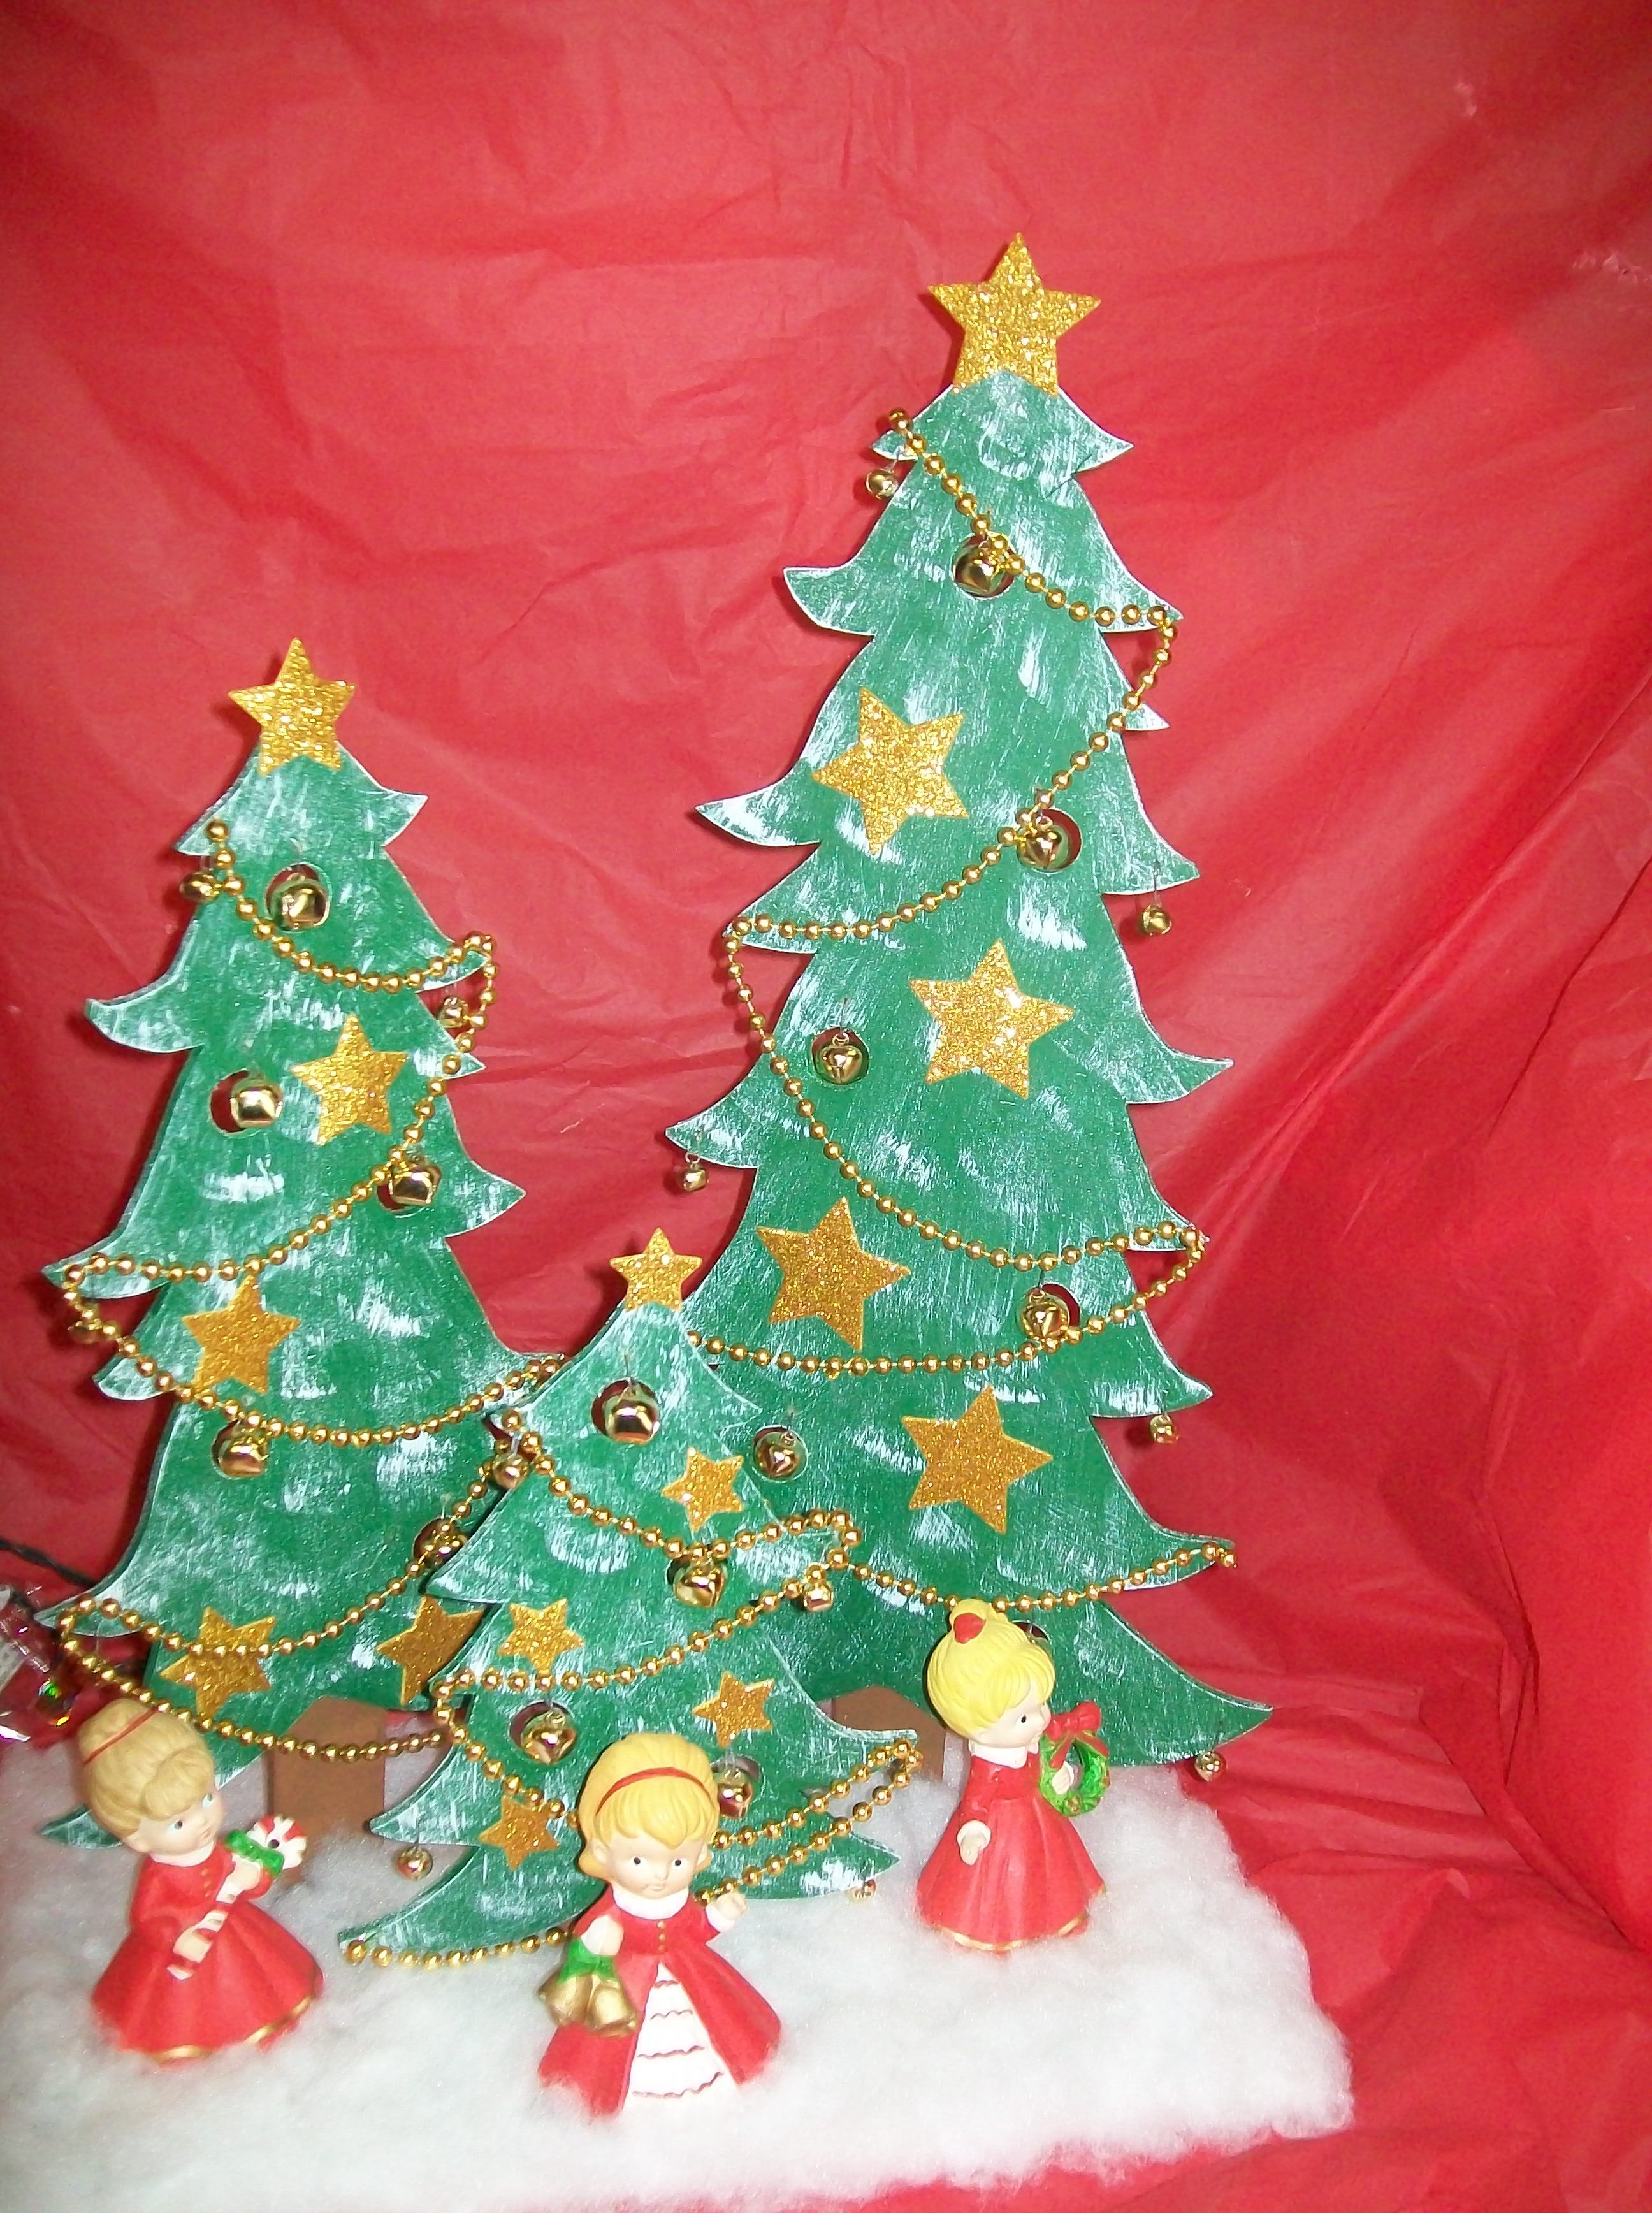 Christmas scenescroll saw work holiday trees pinterest scroll